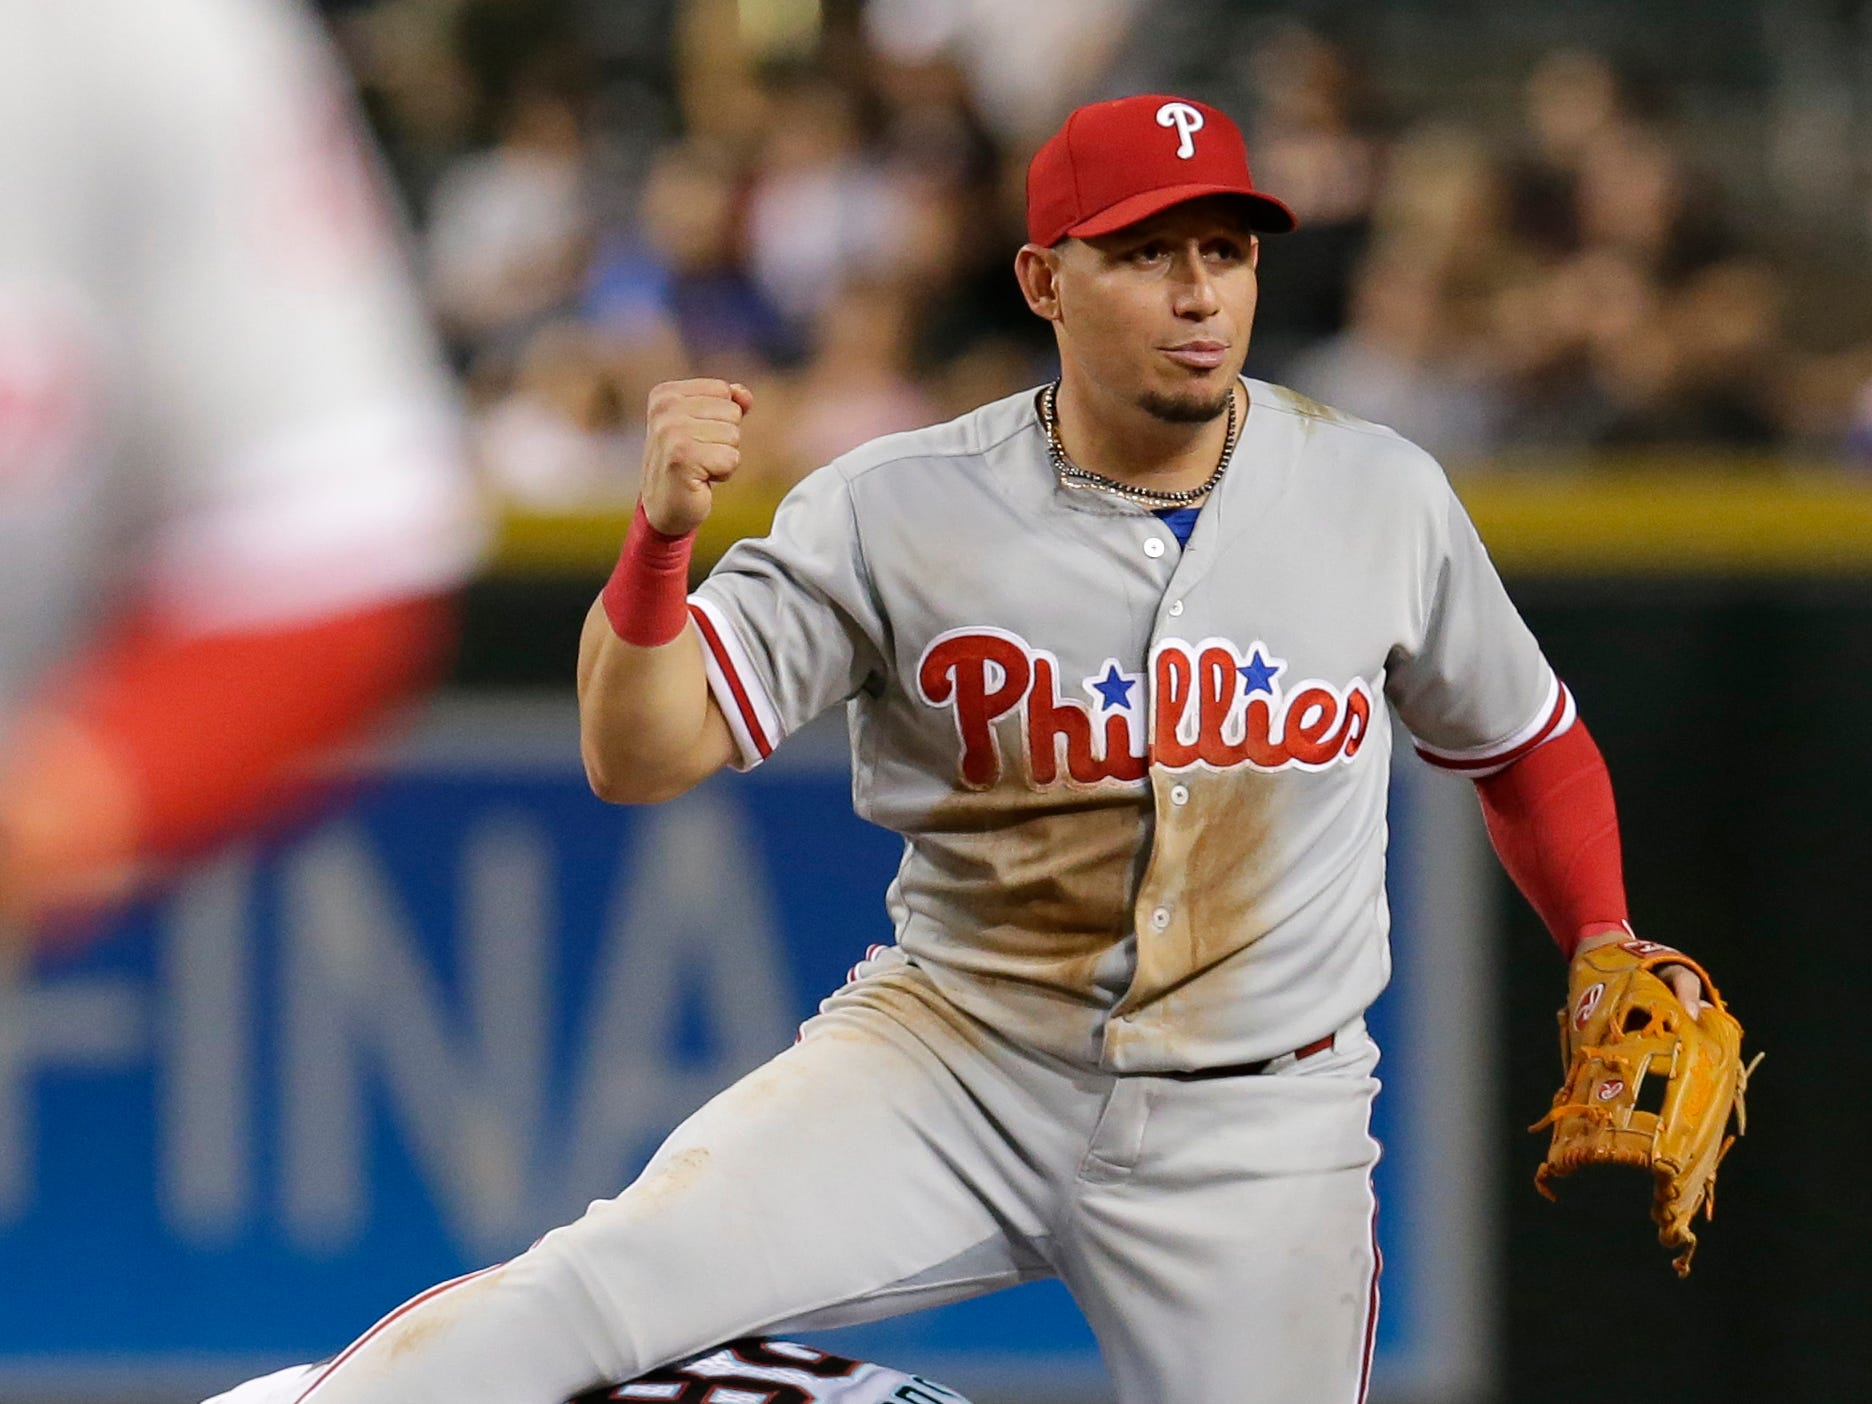 Philadelphia Phillies second baseman Asdrubal Cabrera (13) in the eighth inning during a baseball game against the Arizona Diamondbacks, Tuesday, Aug. 7, 2018, in Phoenix.